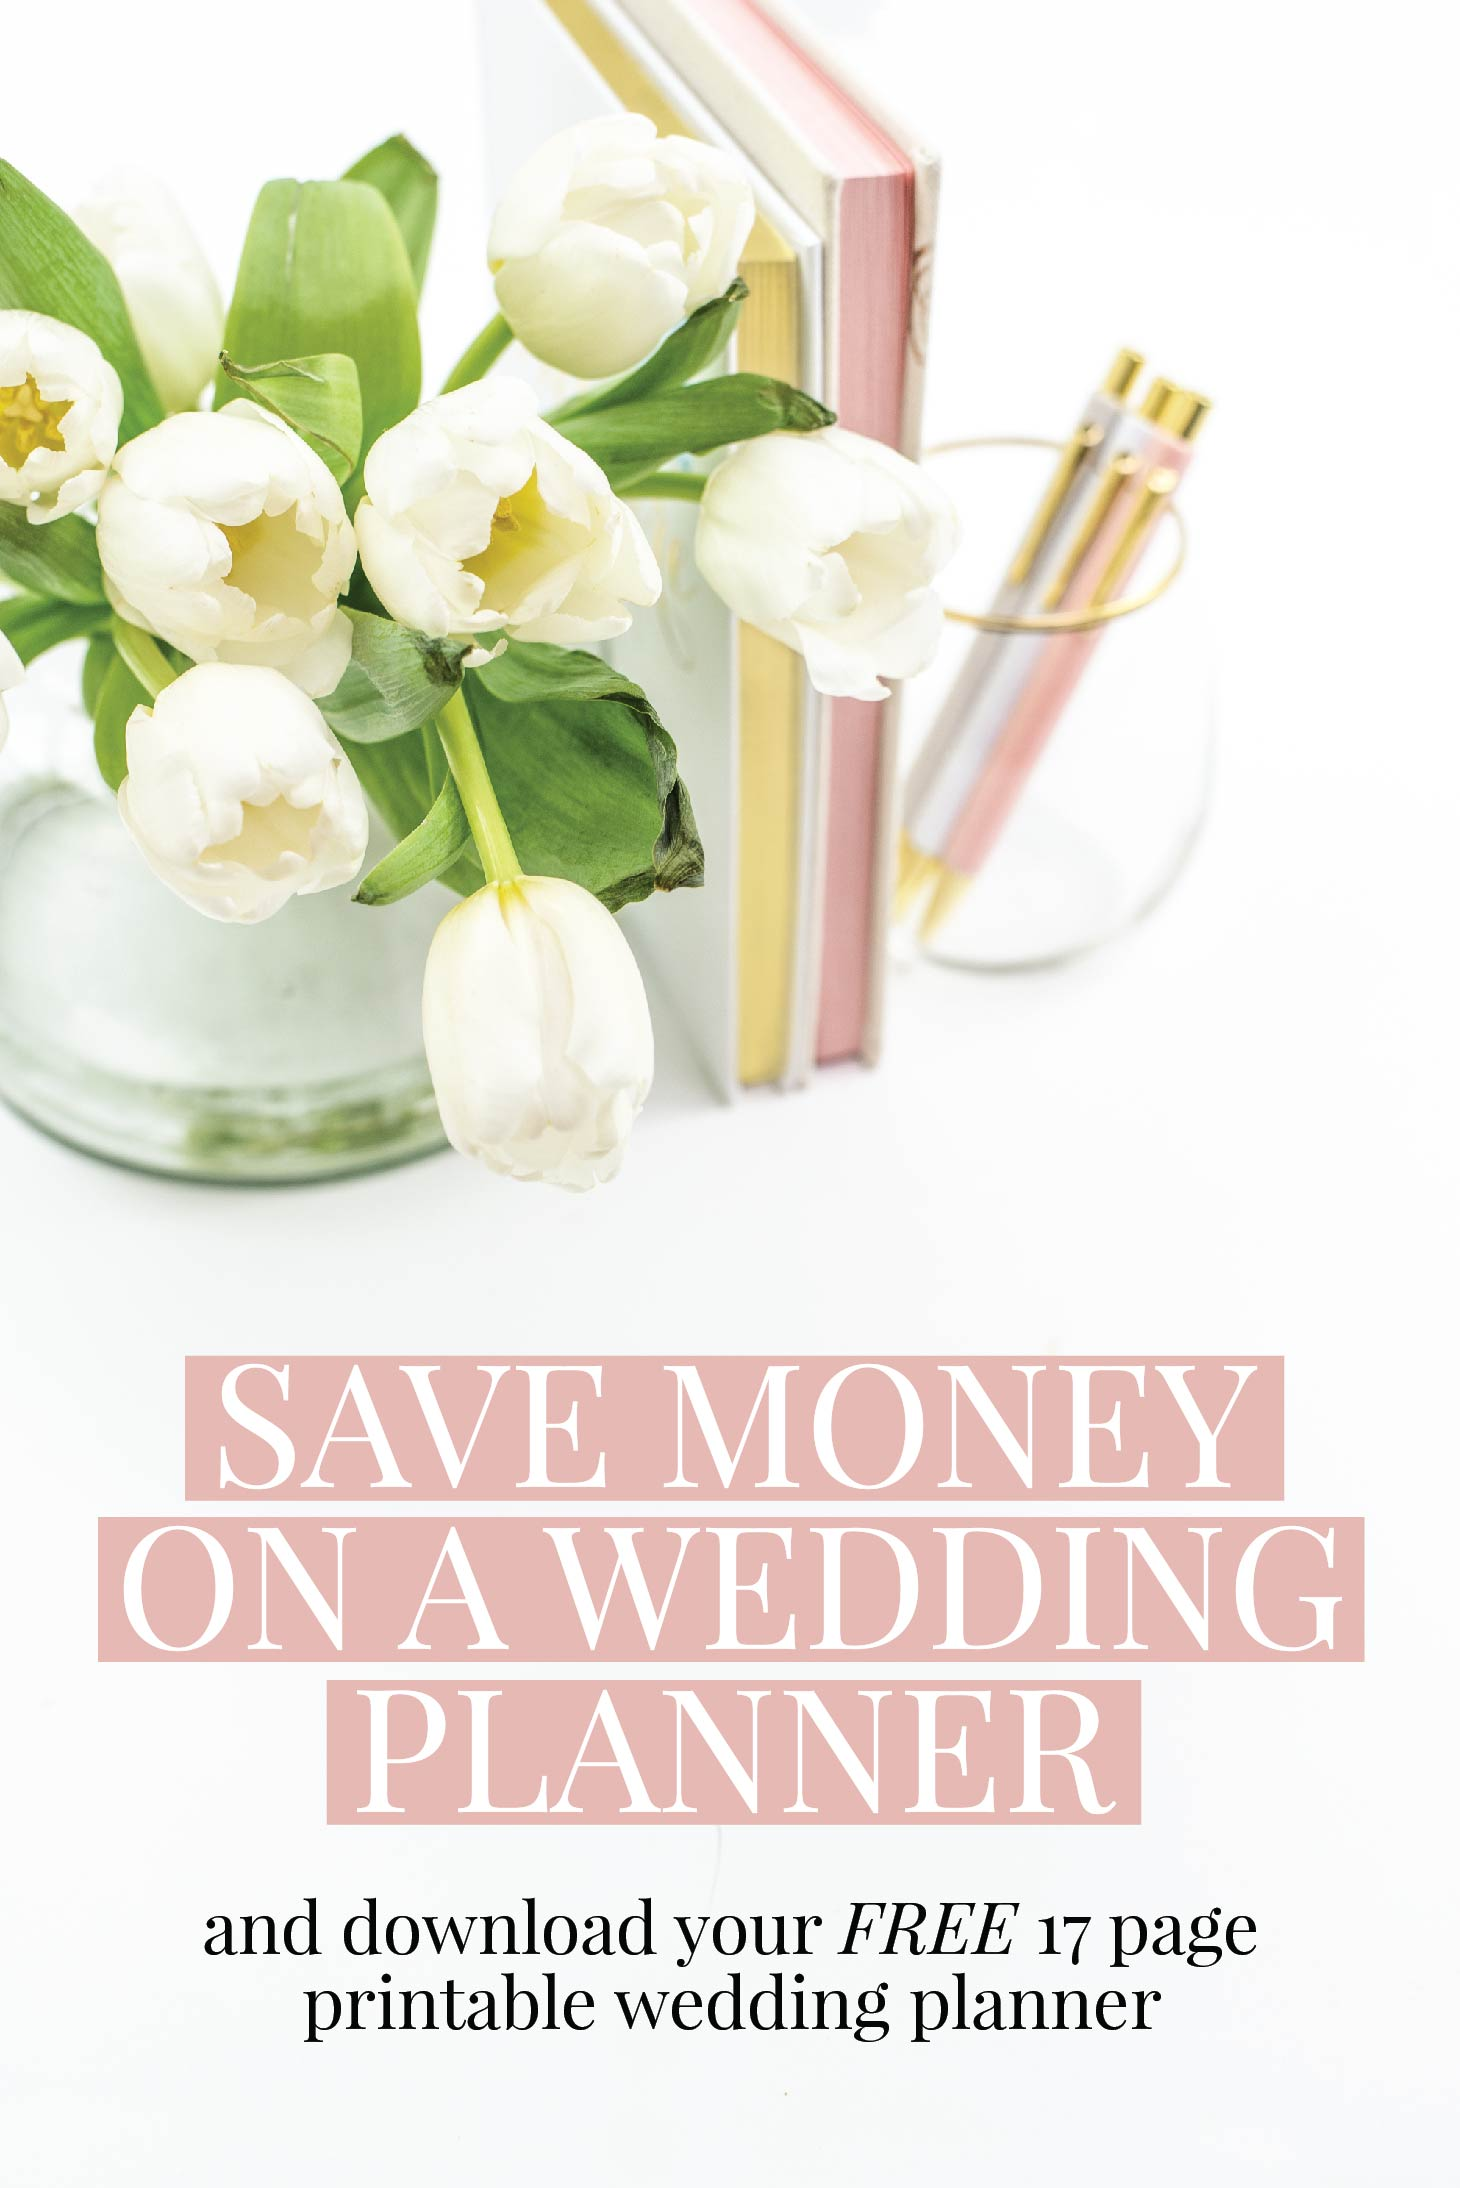 Save-money-on-a-planner-01.jpg